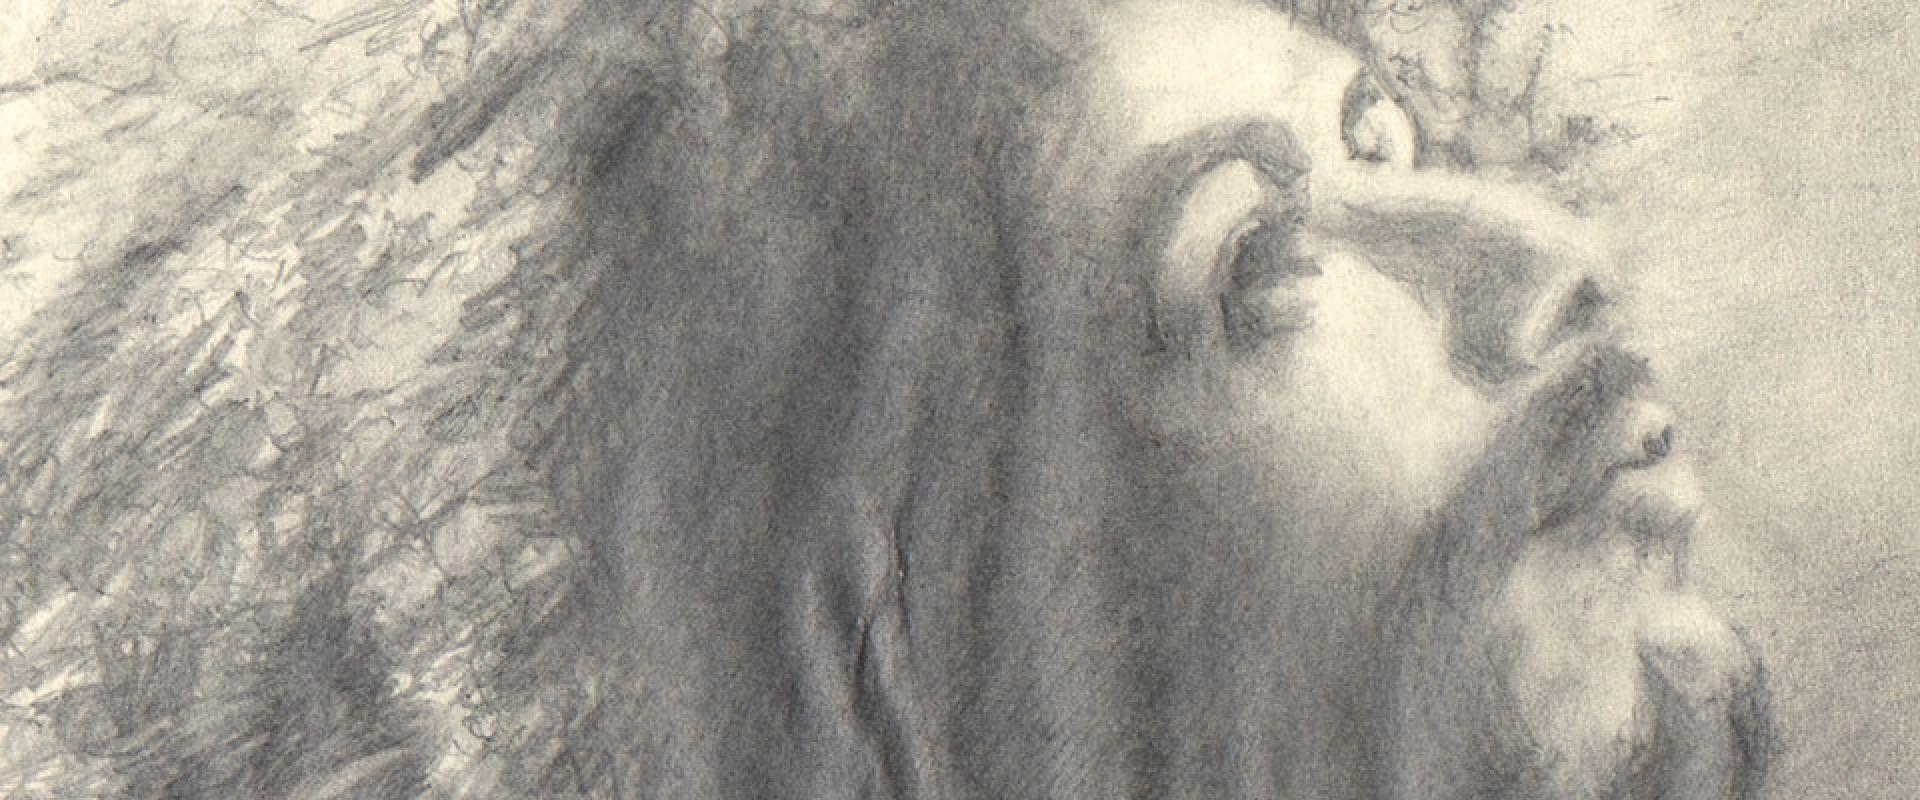 1920x800 Pencil Sketch Art Gallery Of Portraits And Drawings